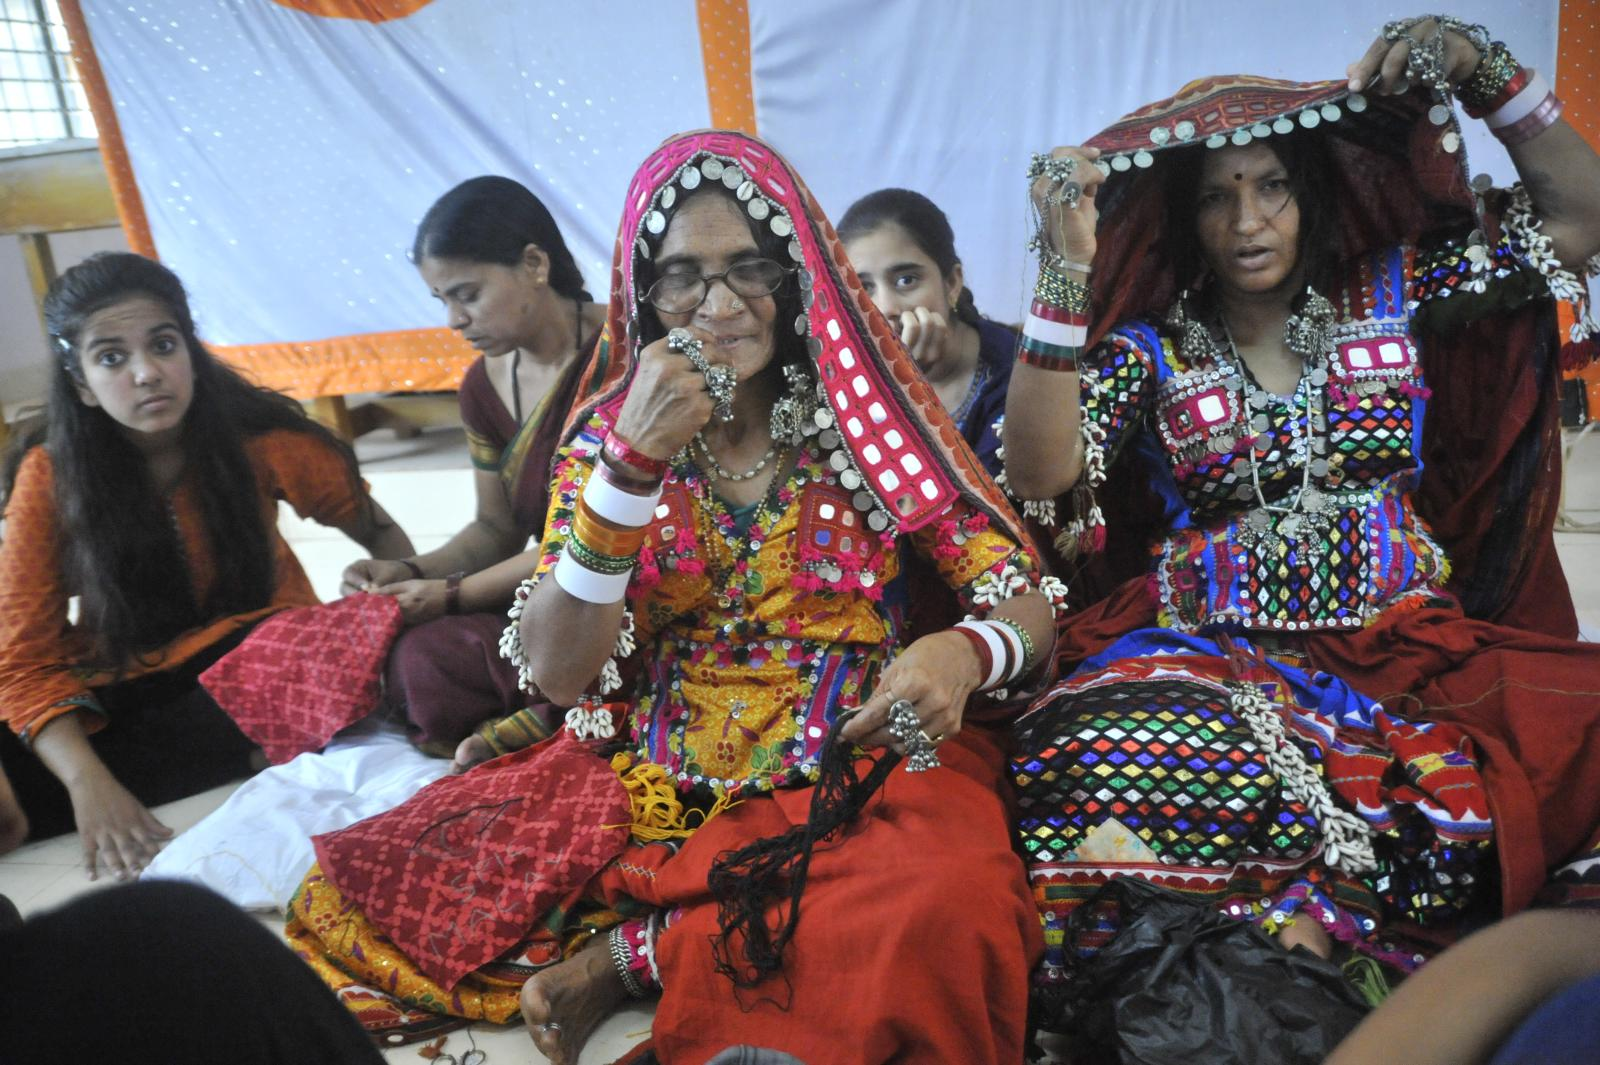 The LAMBADA and other handicraft techniques were learnt by the youngsters